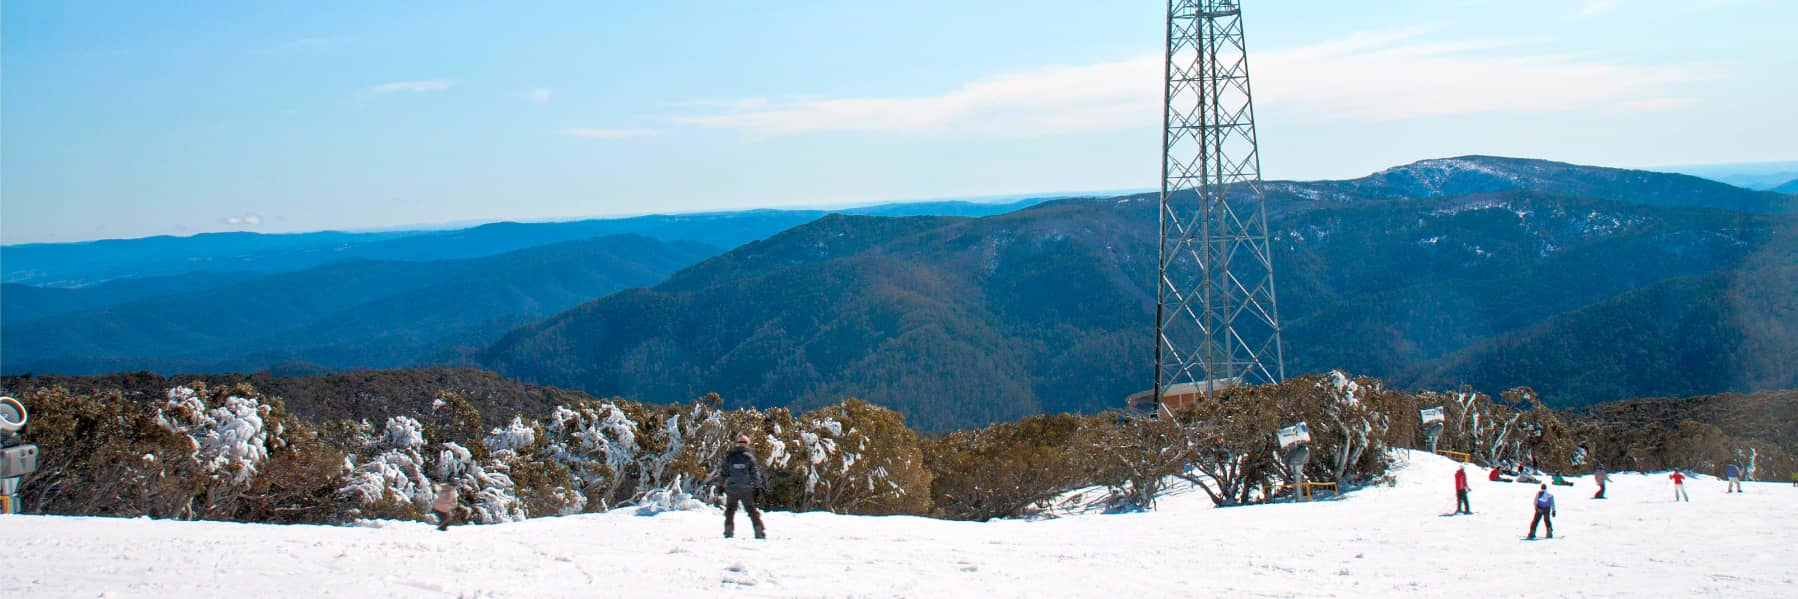 Yarra Valley & Lake Mountain Snow Trip (Melbourne) – Full Day gallery